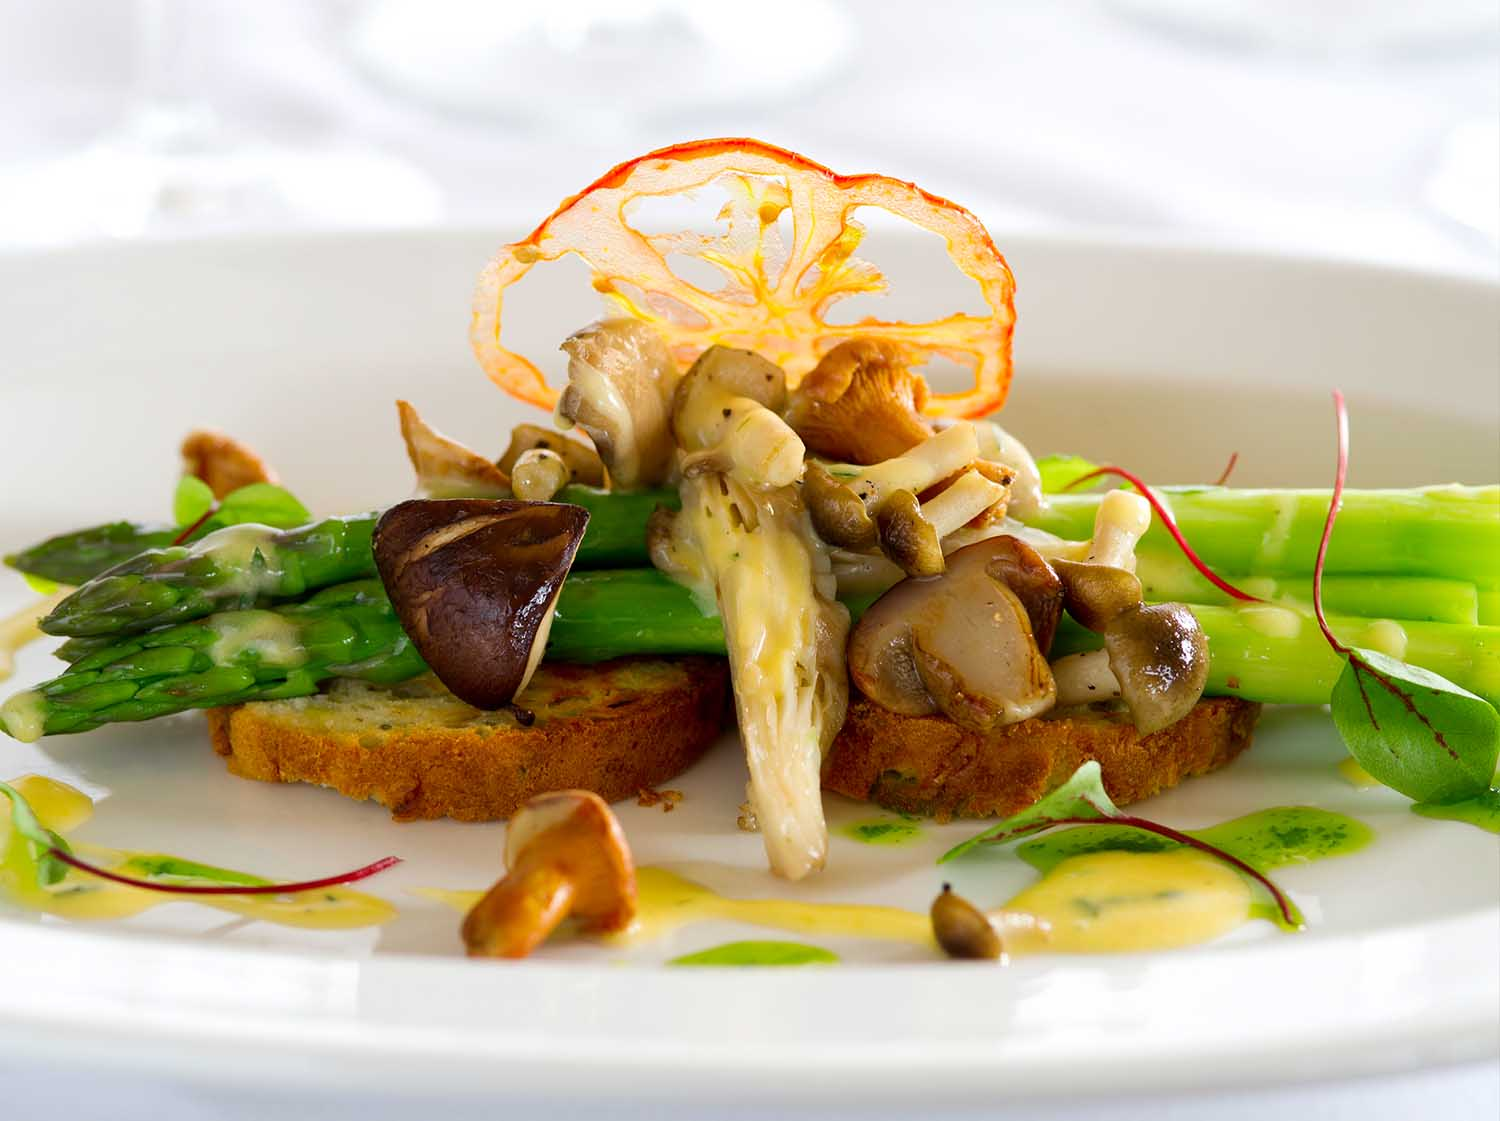 Food - Mushrooms and Asparagus